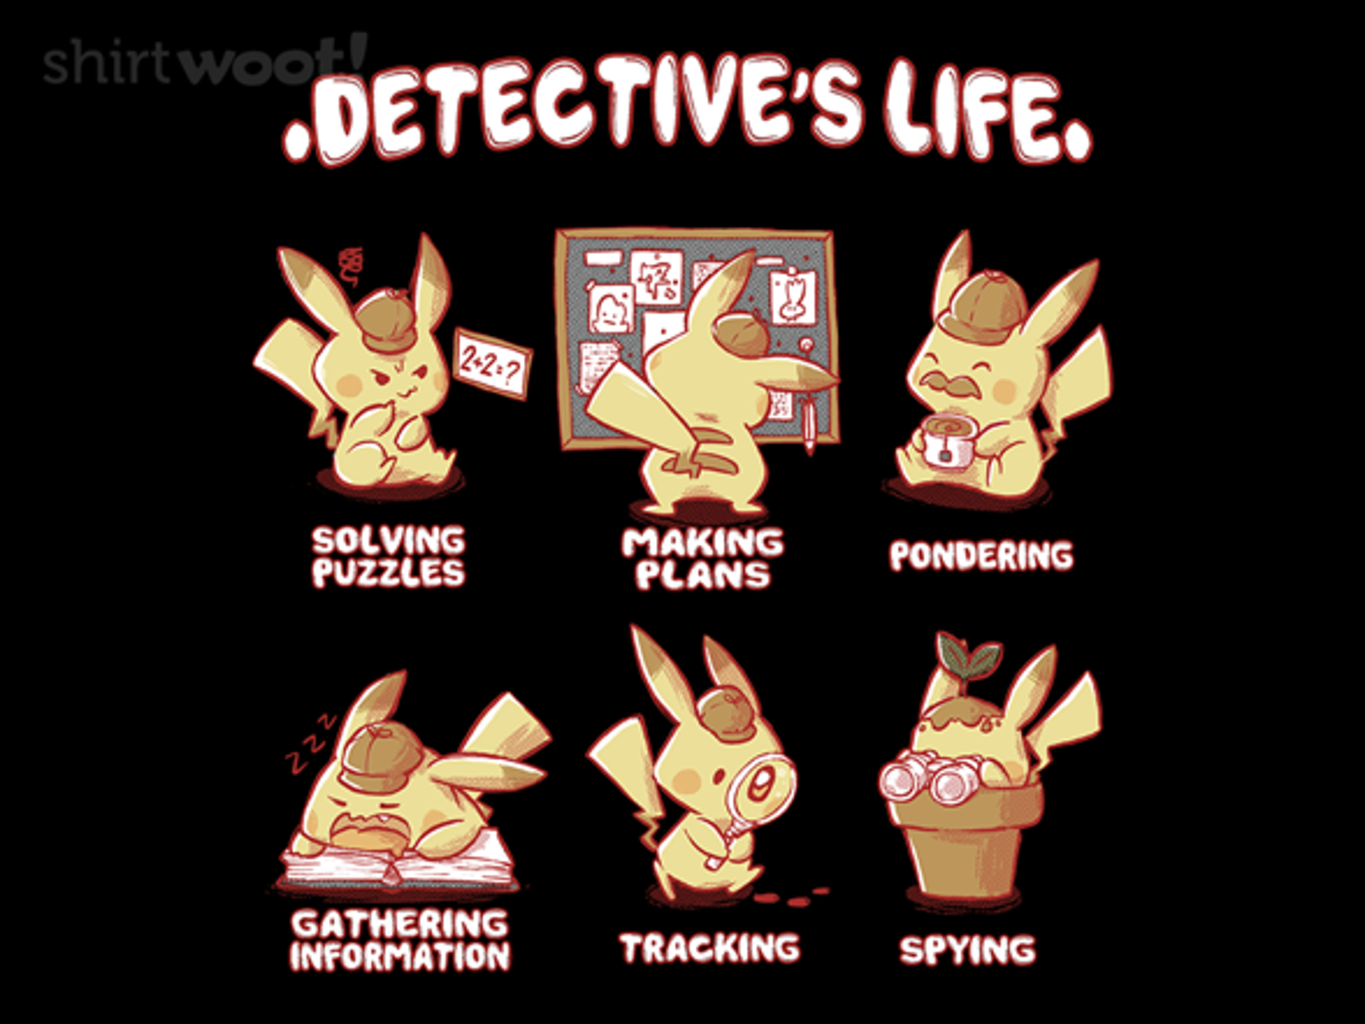 Woot!: Detective's Life